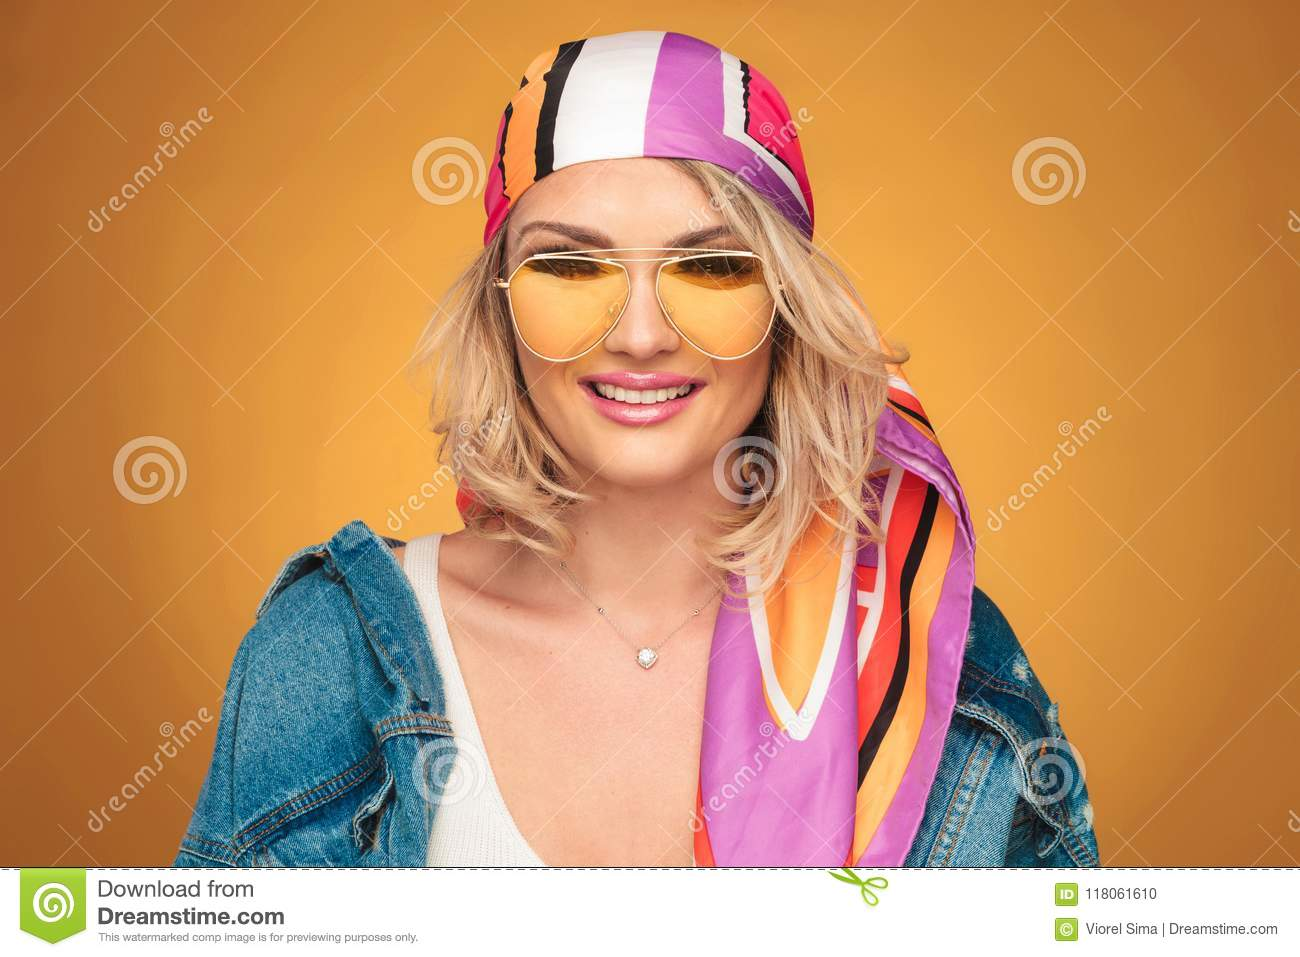 f3a80d9366 Portrait of beautiful blonde woman with colorful outfit smiling on yellow  background. She is wearing a colorful headscarf